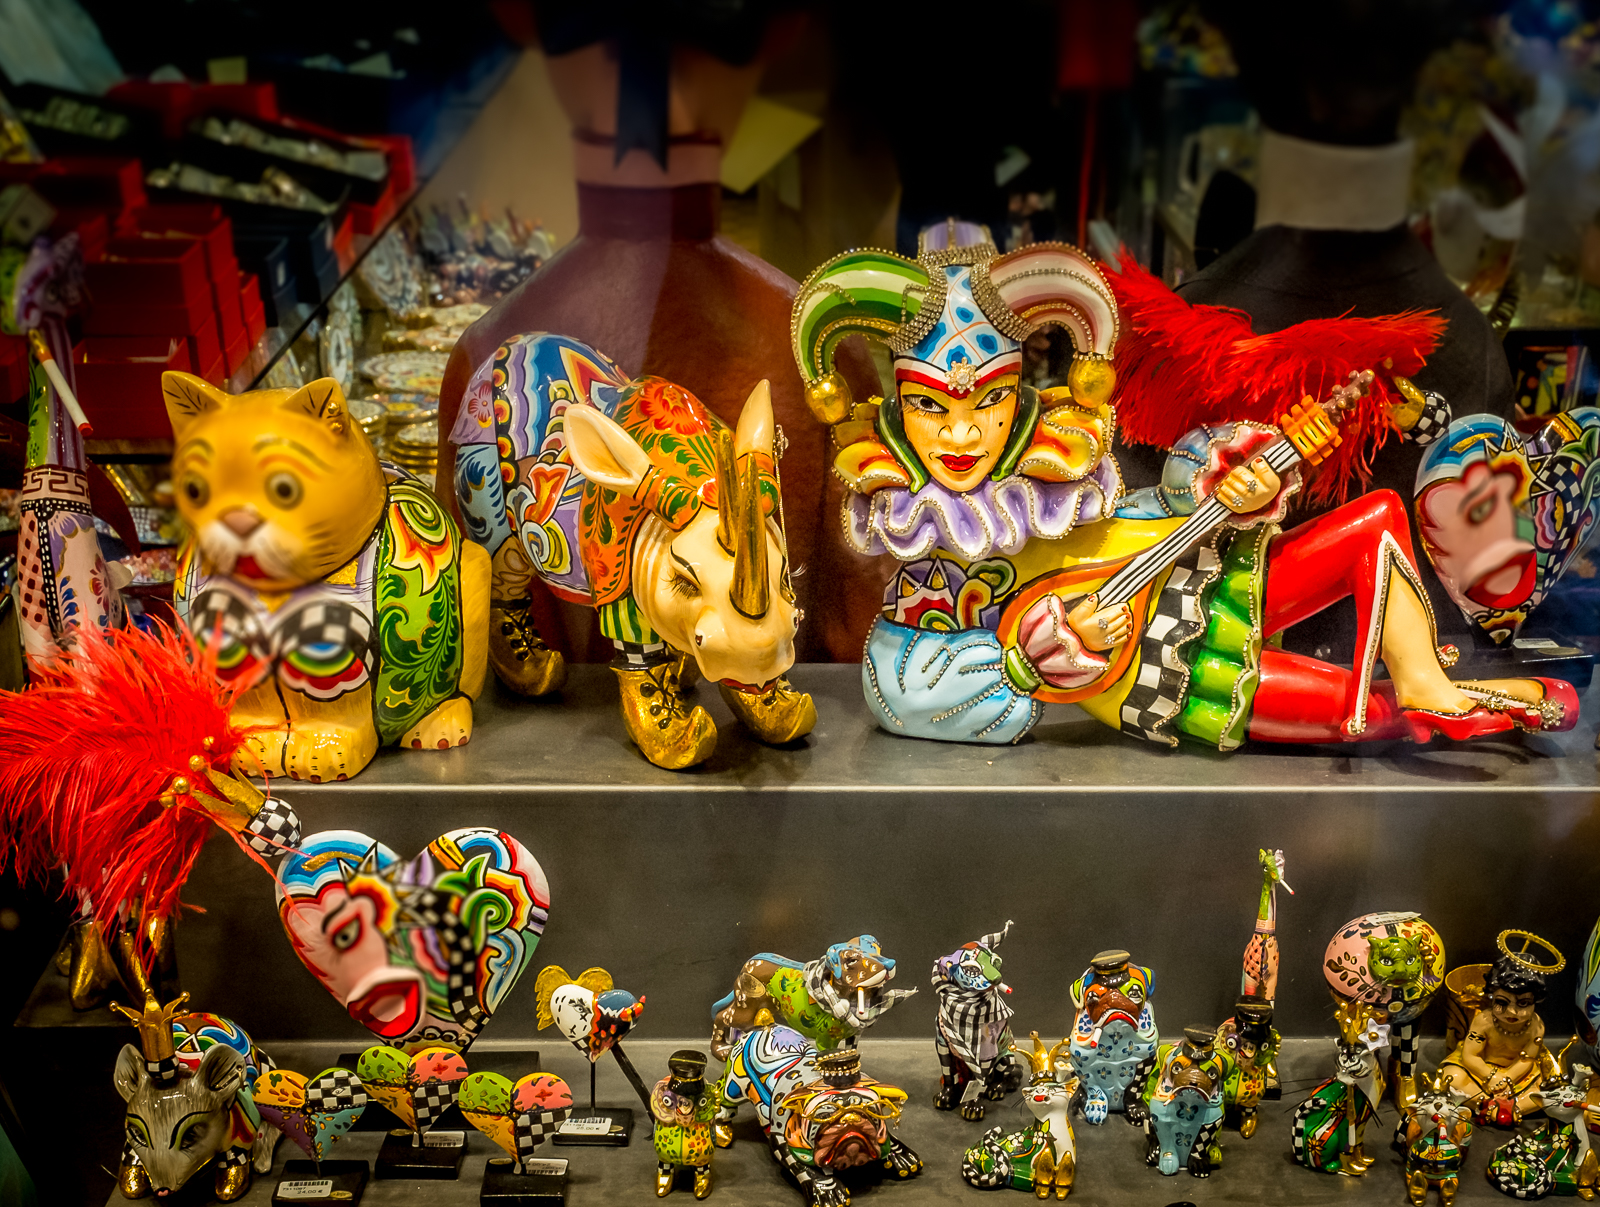 trinket-shop-window-by-chrisfrost